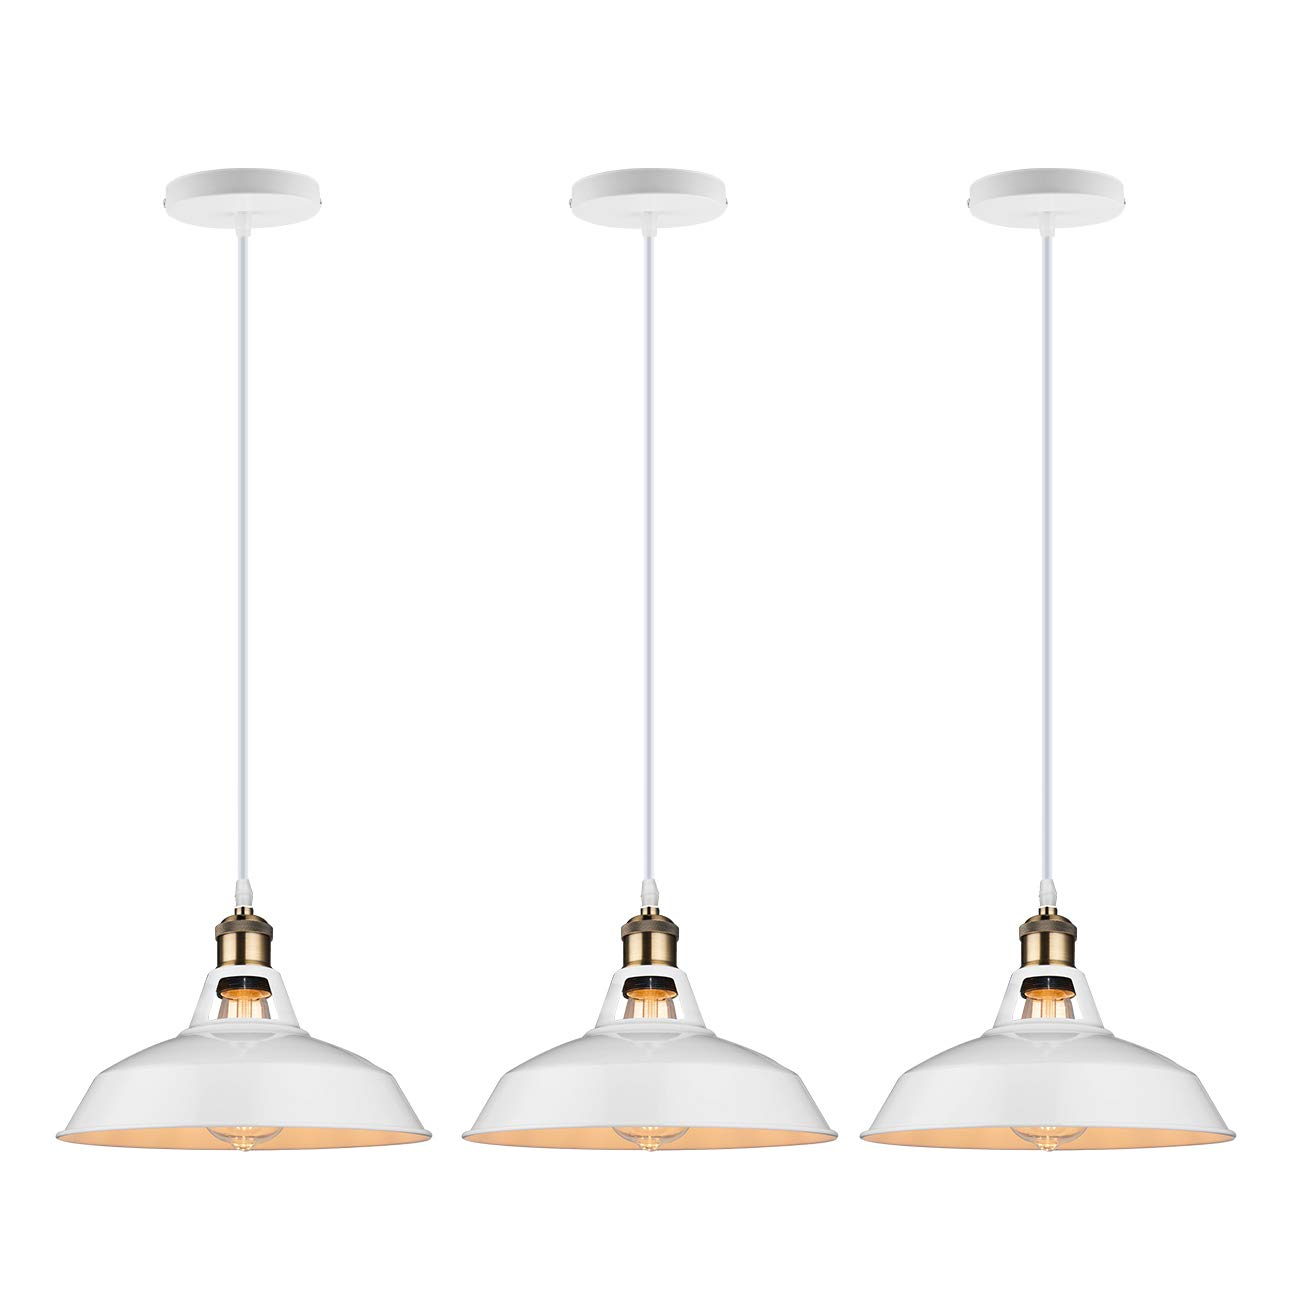 Galygg retro industrial pendant lighting white metal shade ceiling hanging light fixtures 10 63 in diameter included 4w e26 edison bulb